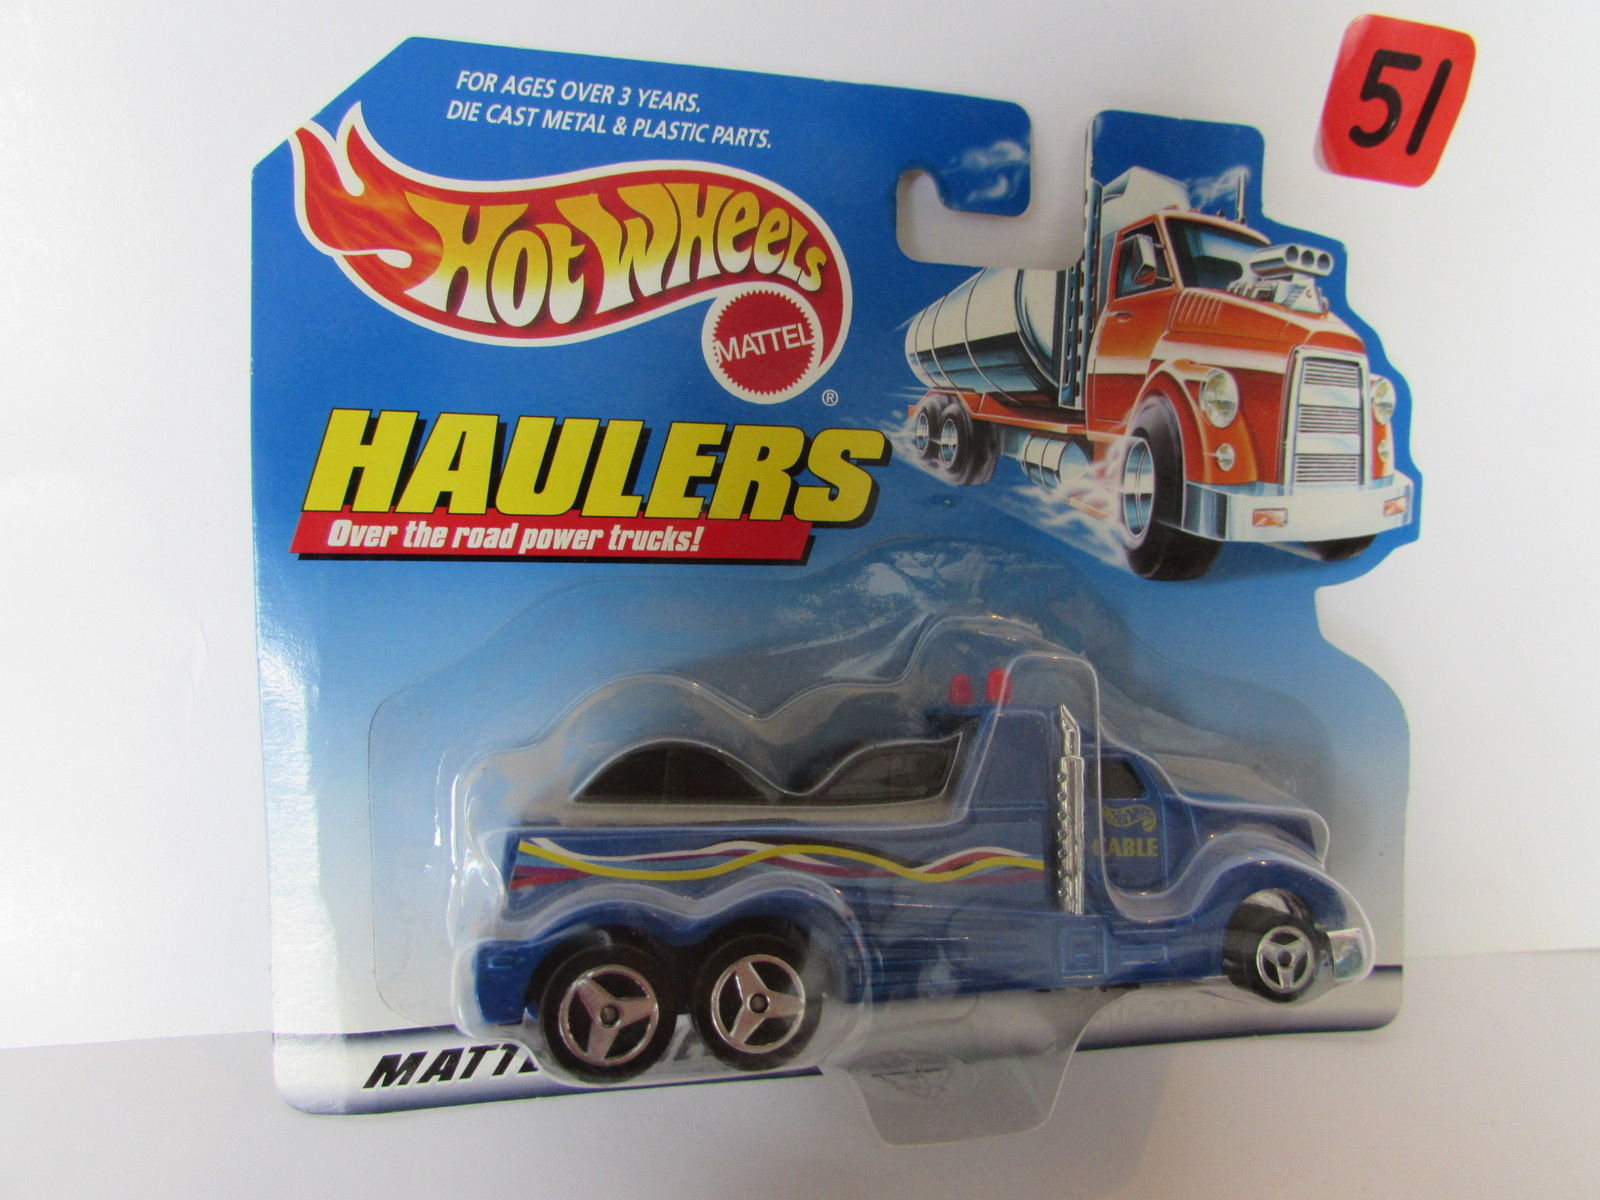 HOT WHEELS 1998 HAULERS OVER THE ROAD POWER TRUCKS - CABLE BLUE